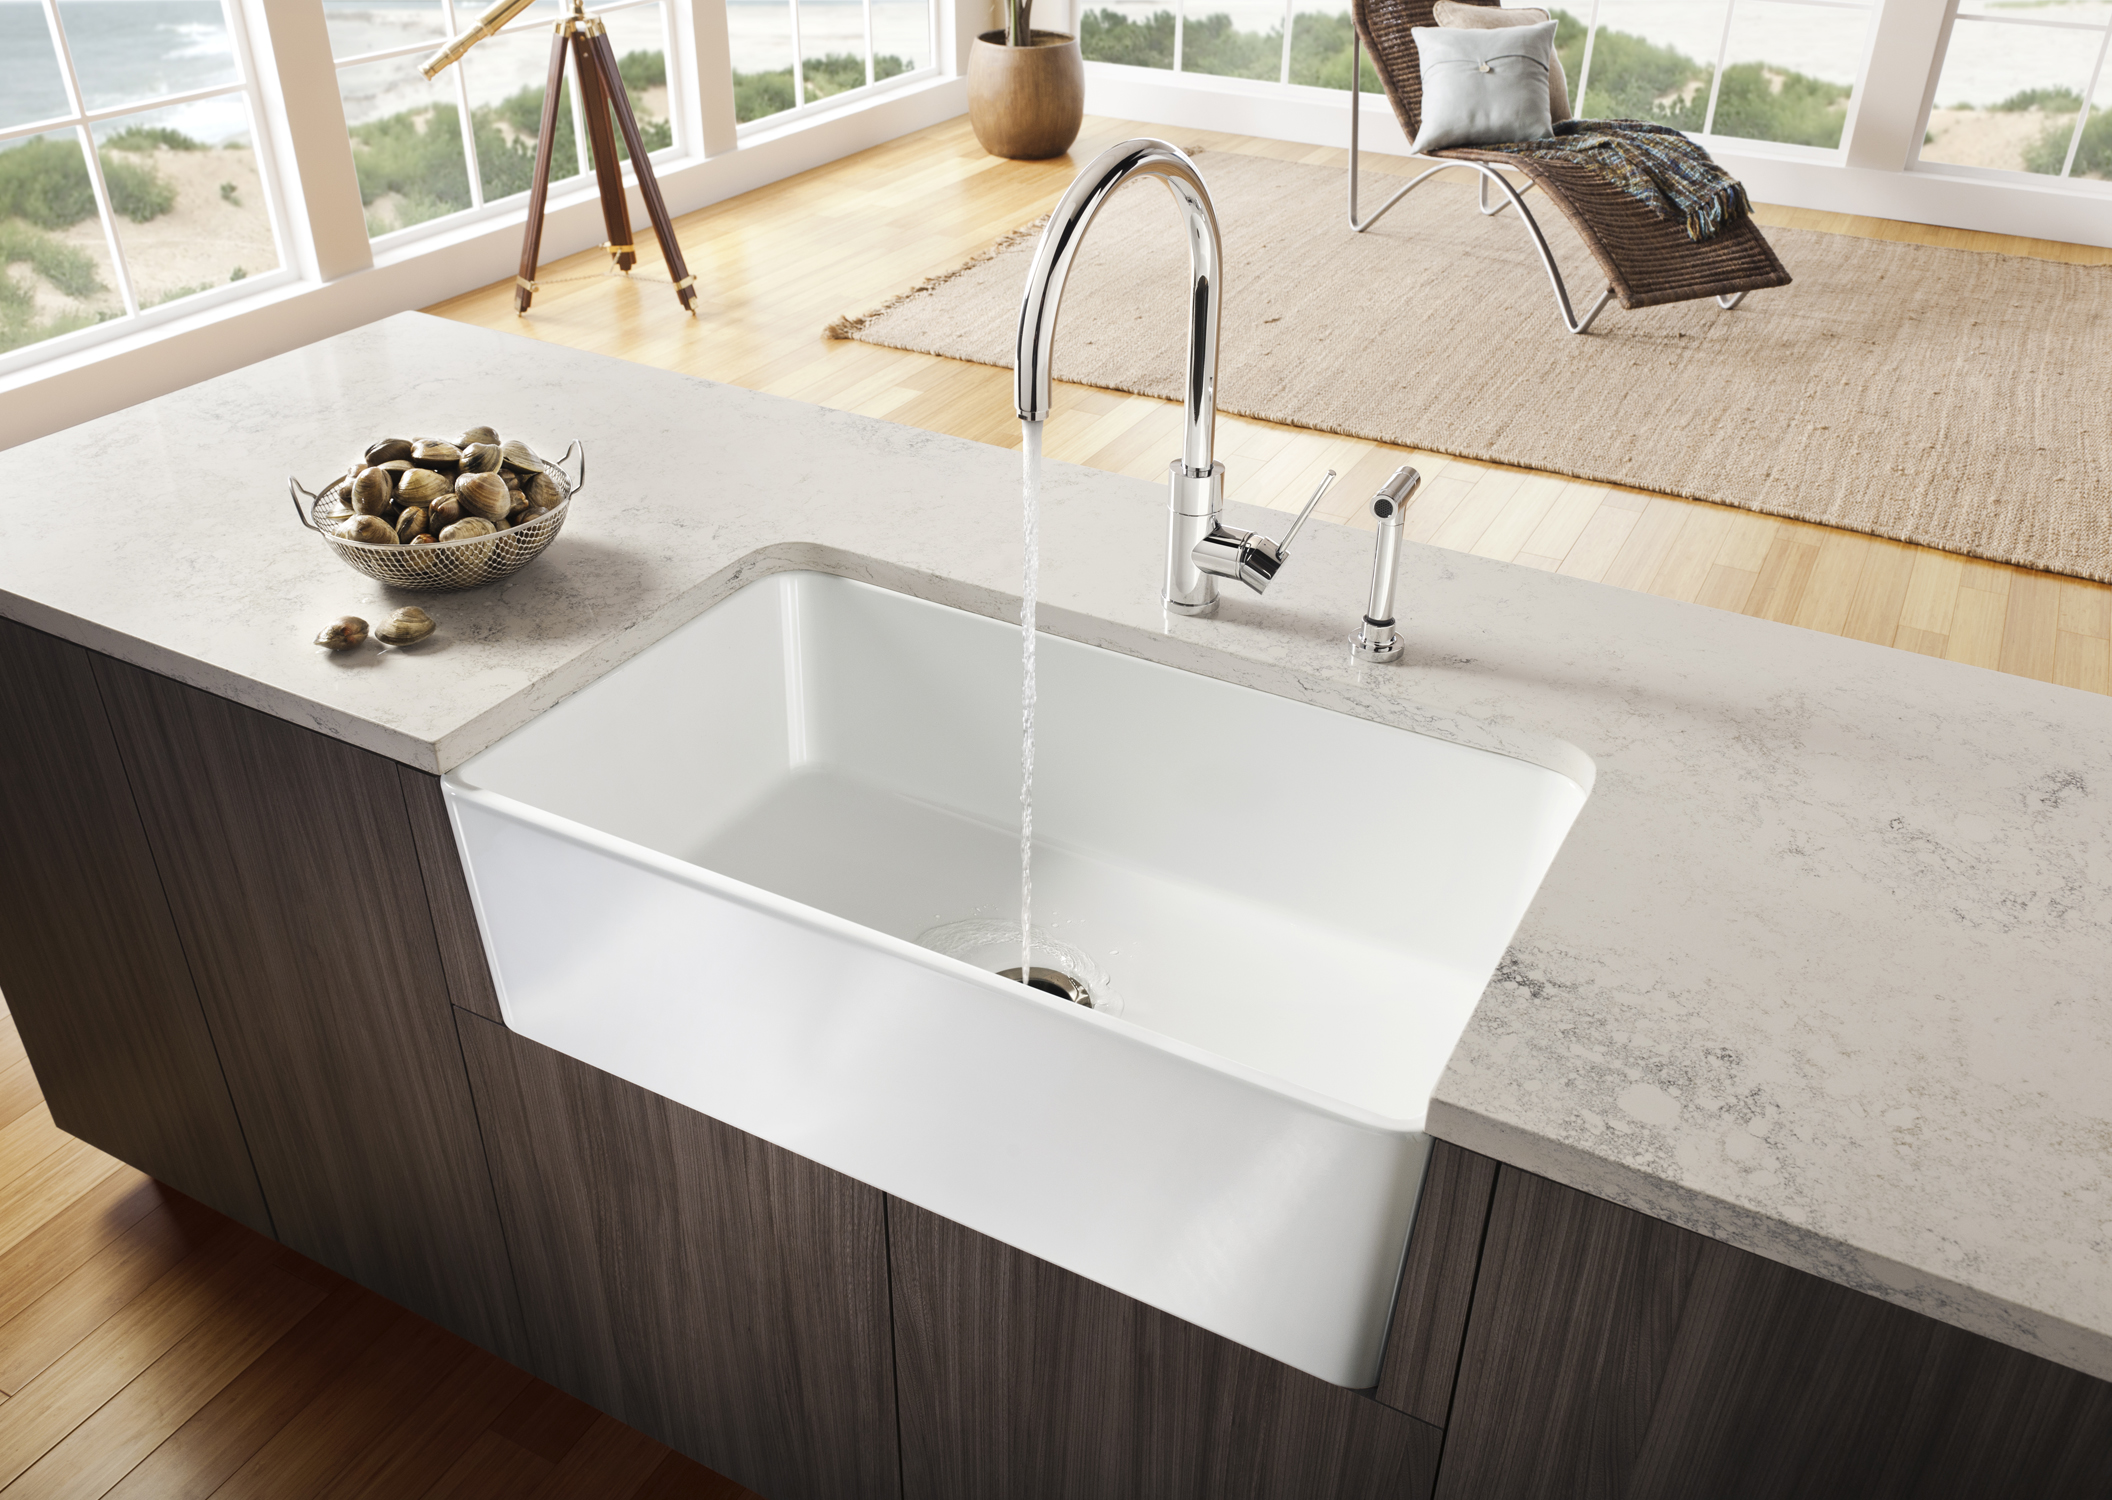 rectangle white apron sink plus faucet plus white marble countertop for kitchen decor ideas